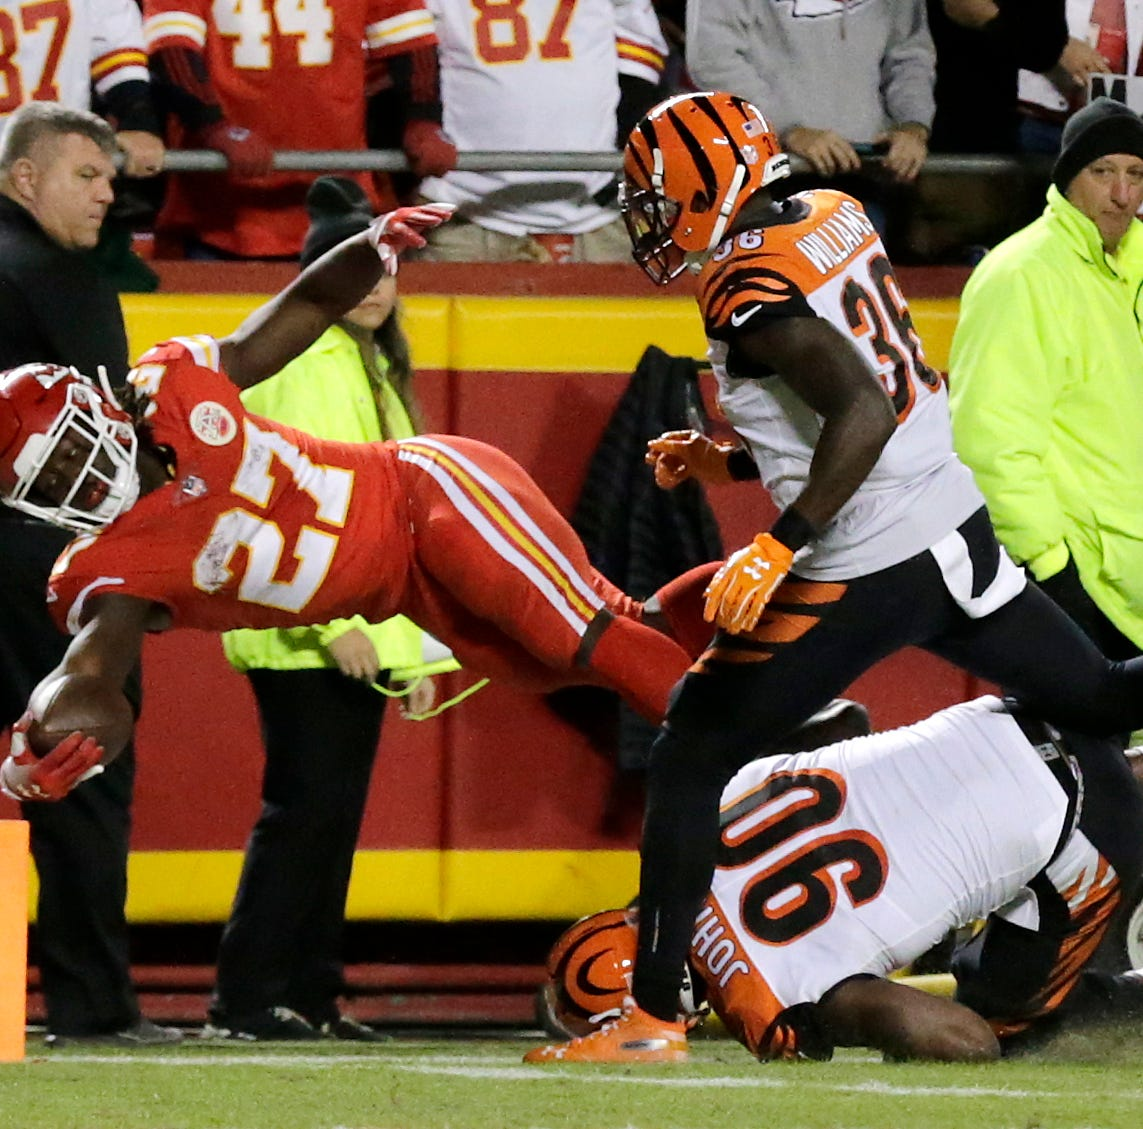 Kansas City Chiefs offense rolls in blowout of Cincinnati Bengals on primetime